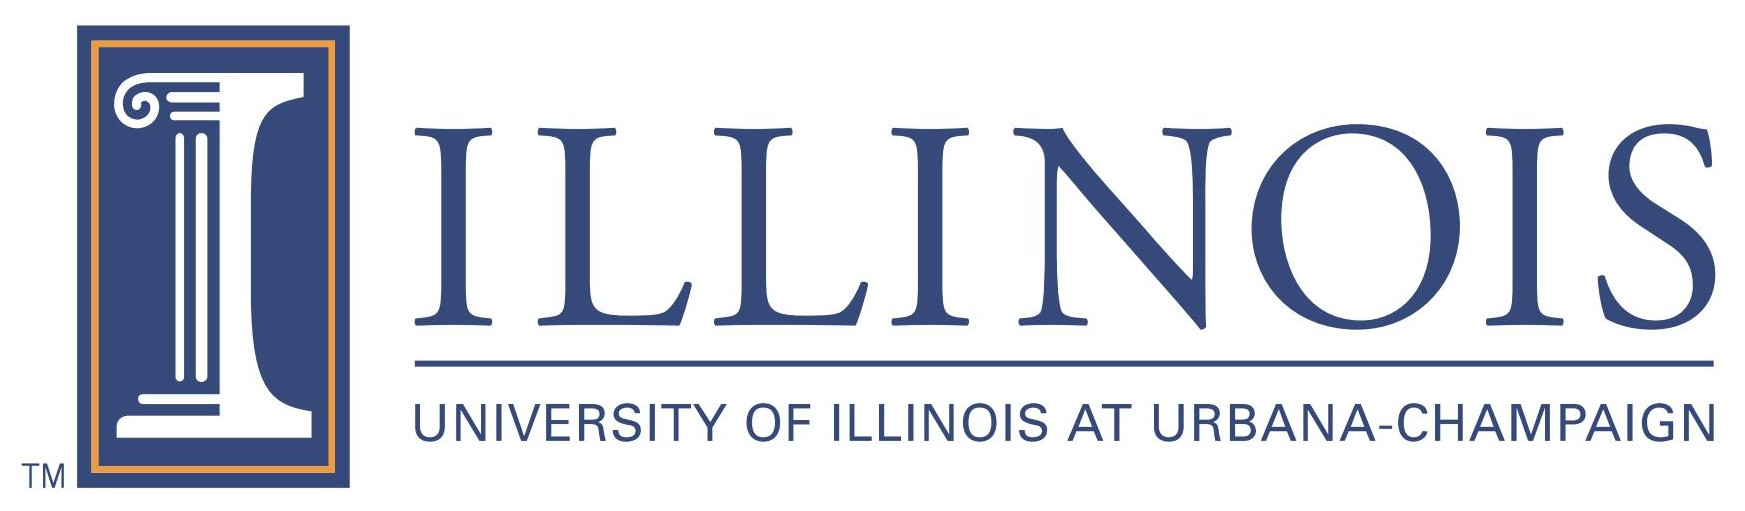 university of illinois at urbana-champaign essay The second phase of the assessment process is a non-academic evaluation by the admissions illinois supplemental essay ©2018 university of illinois.